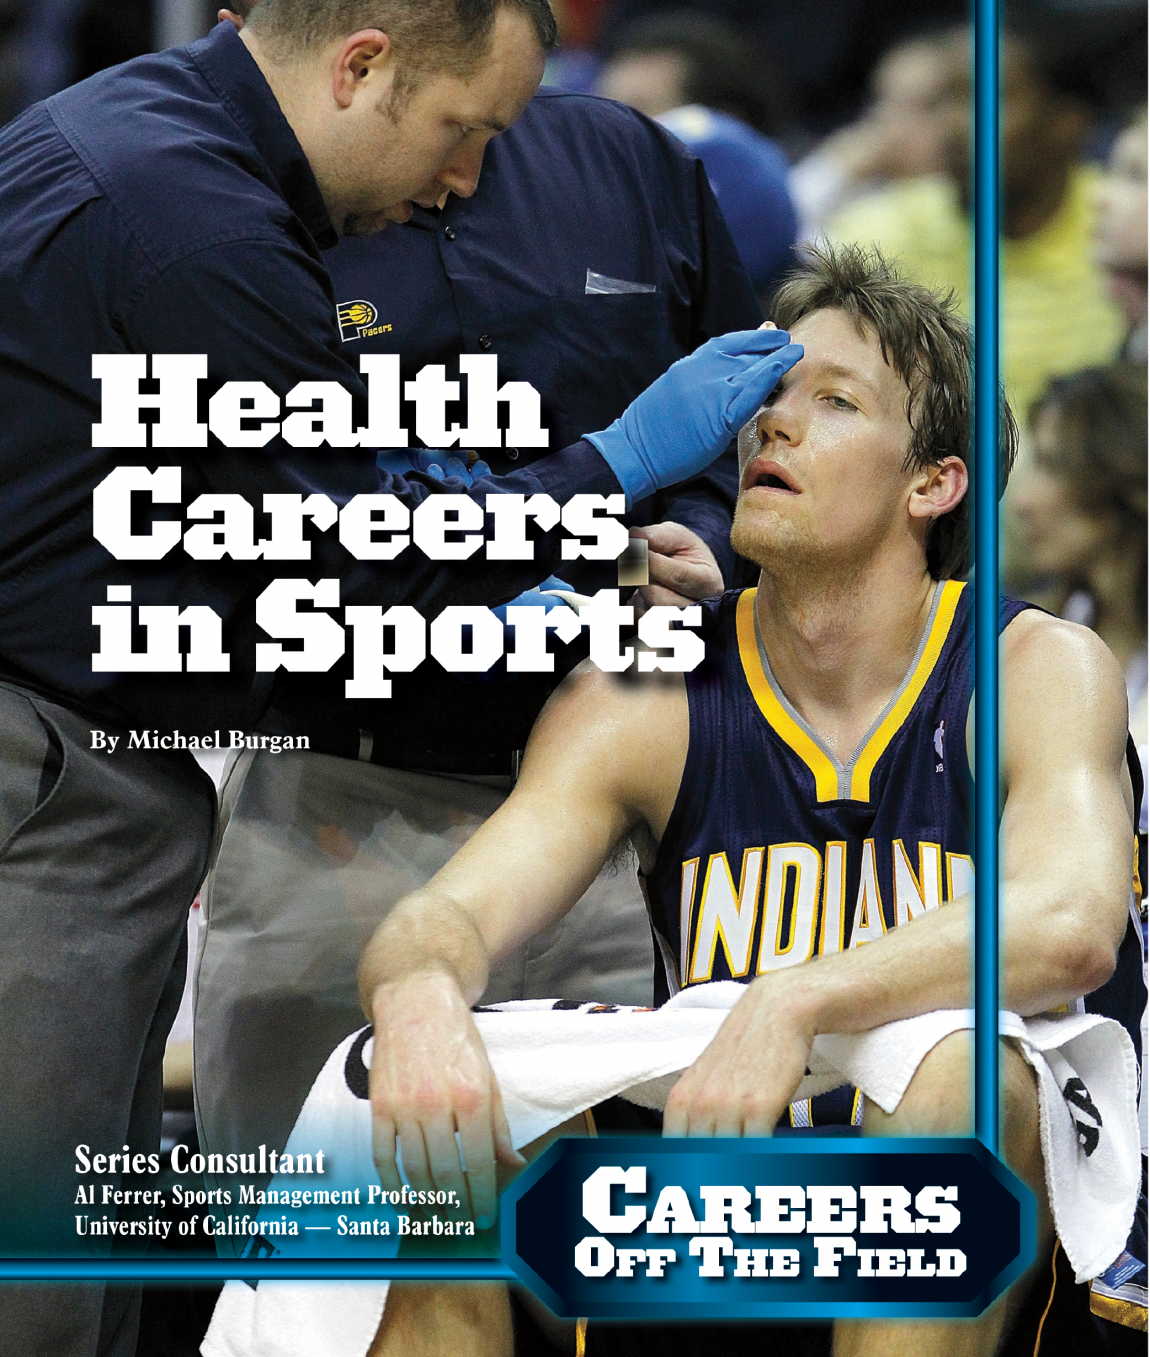 health-careers-in-sports-01.png